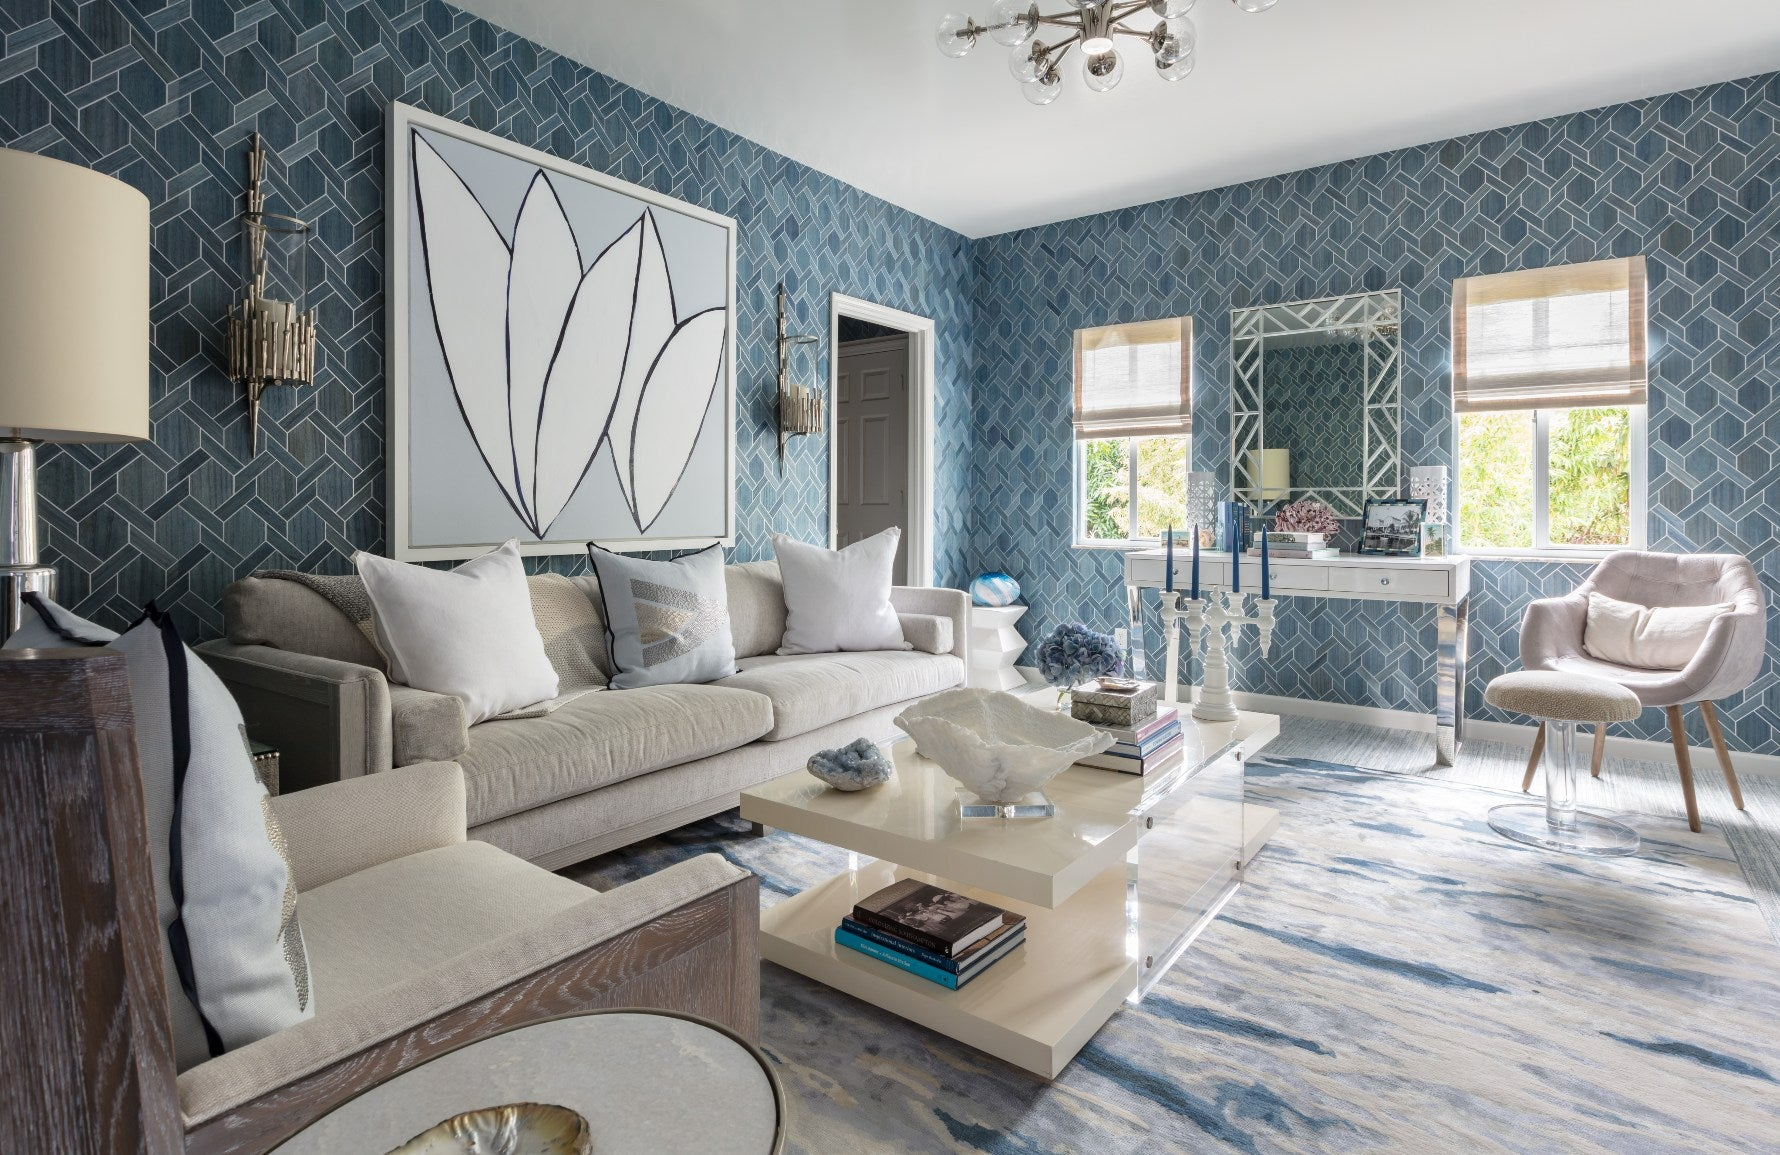 Kips Bay Living Room by Mabley Handler | White and Blue Living Room Ideas | © Nikolas Sargent | Read more in the LuxDeco.com Style Guide